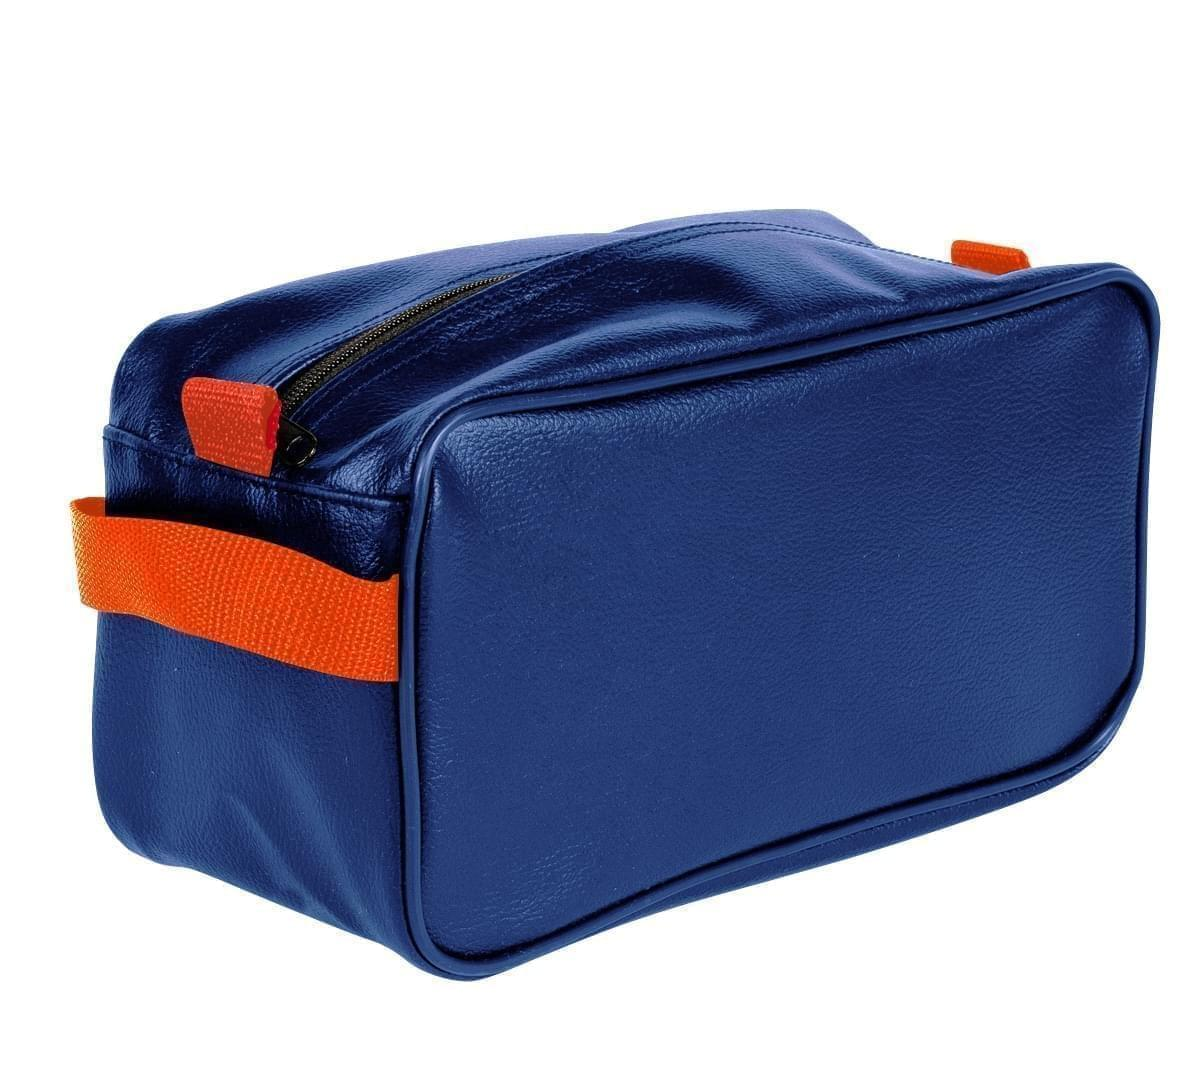 USA Made Cosmetic & Toiletry Cases, Royal Blue-Orange, 3000996-A00